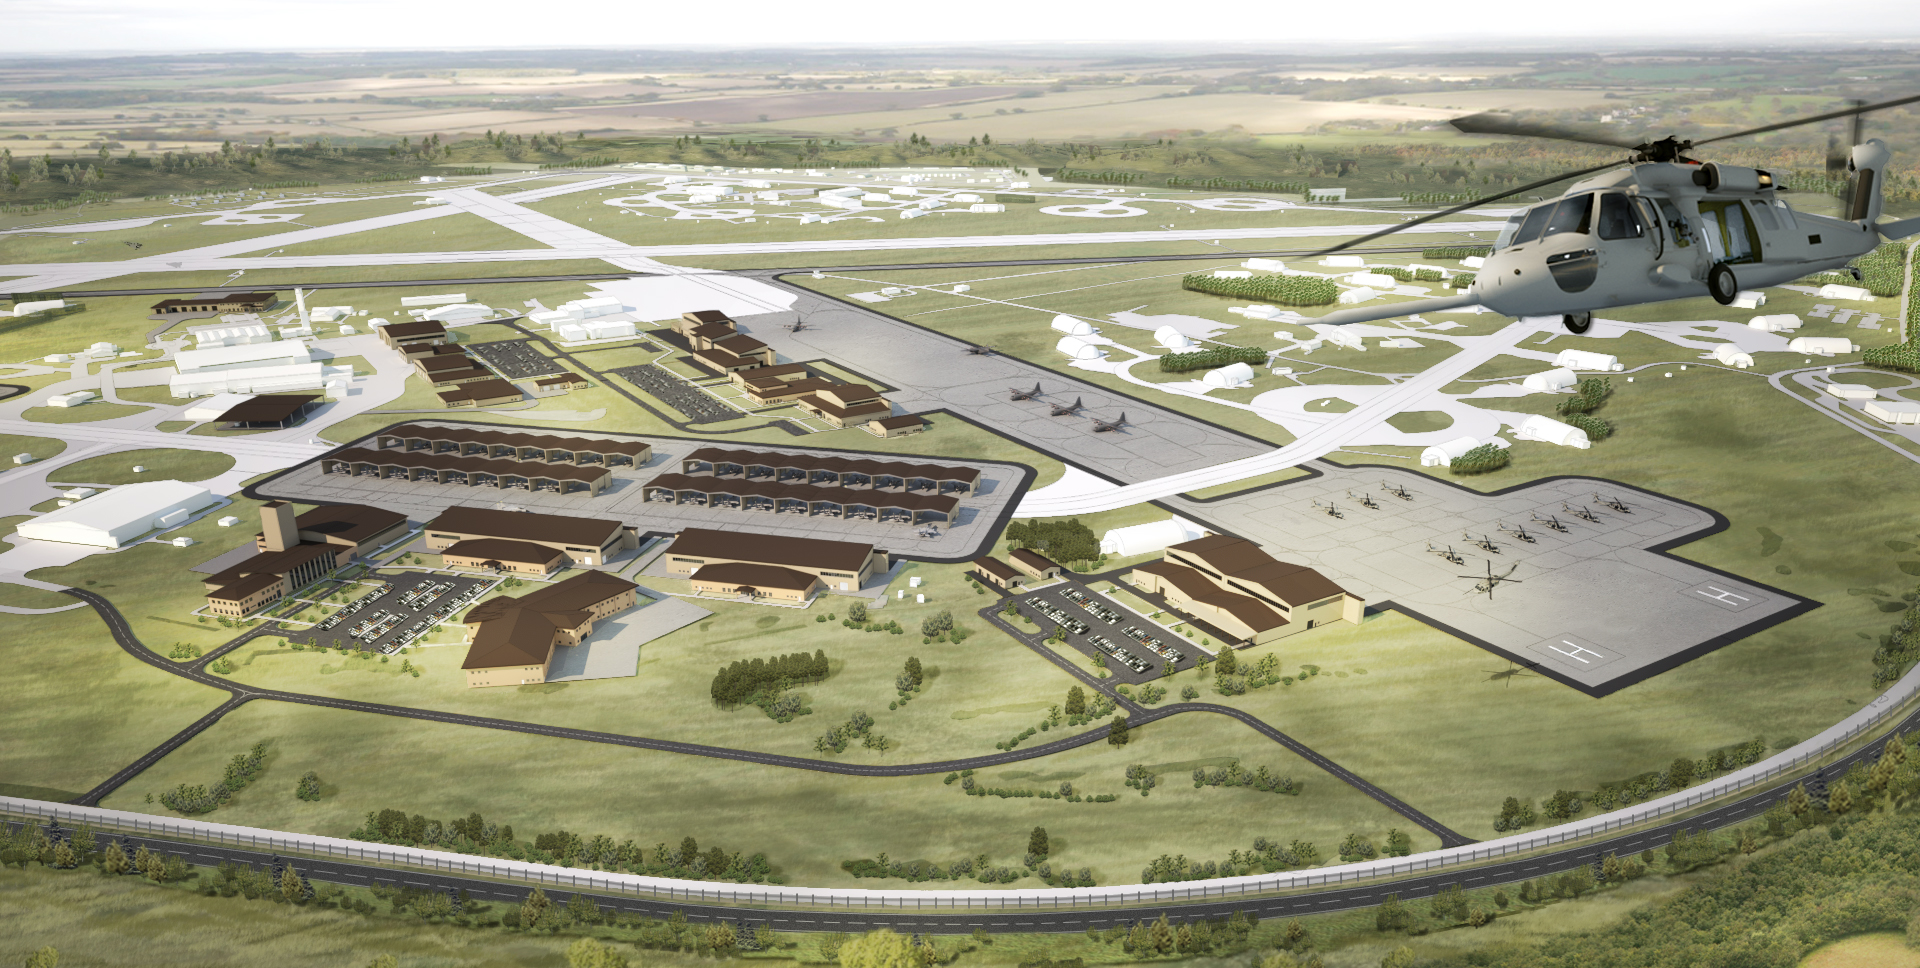 AIRFIELD AREA DEVELOPMENT PLAN - Royal Air Force Lakenheath, UK